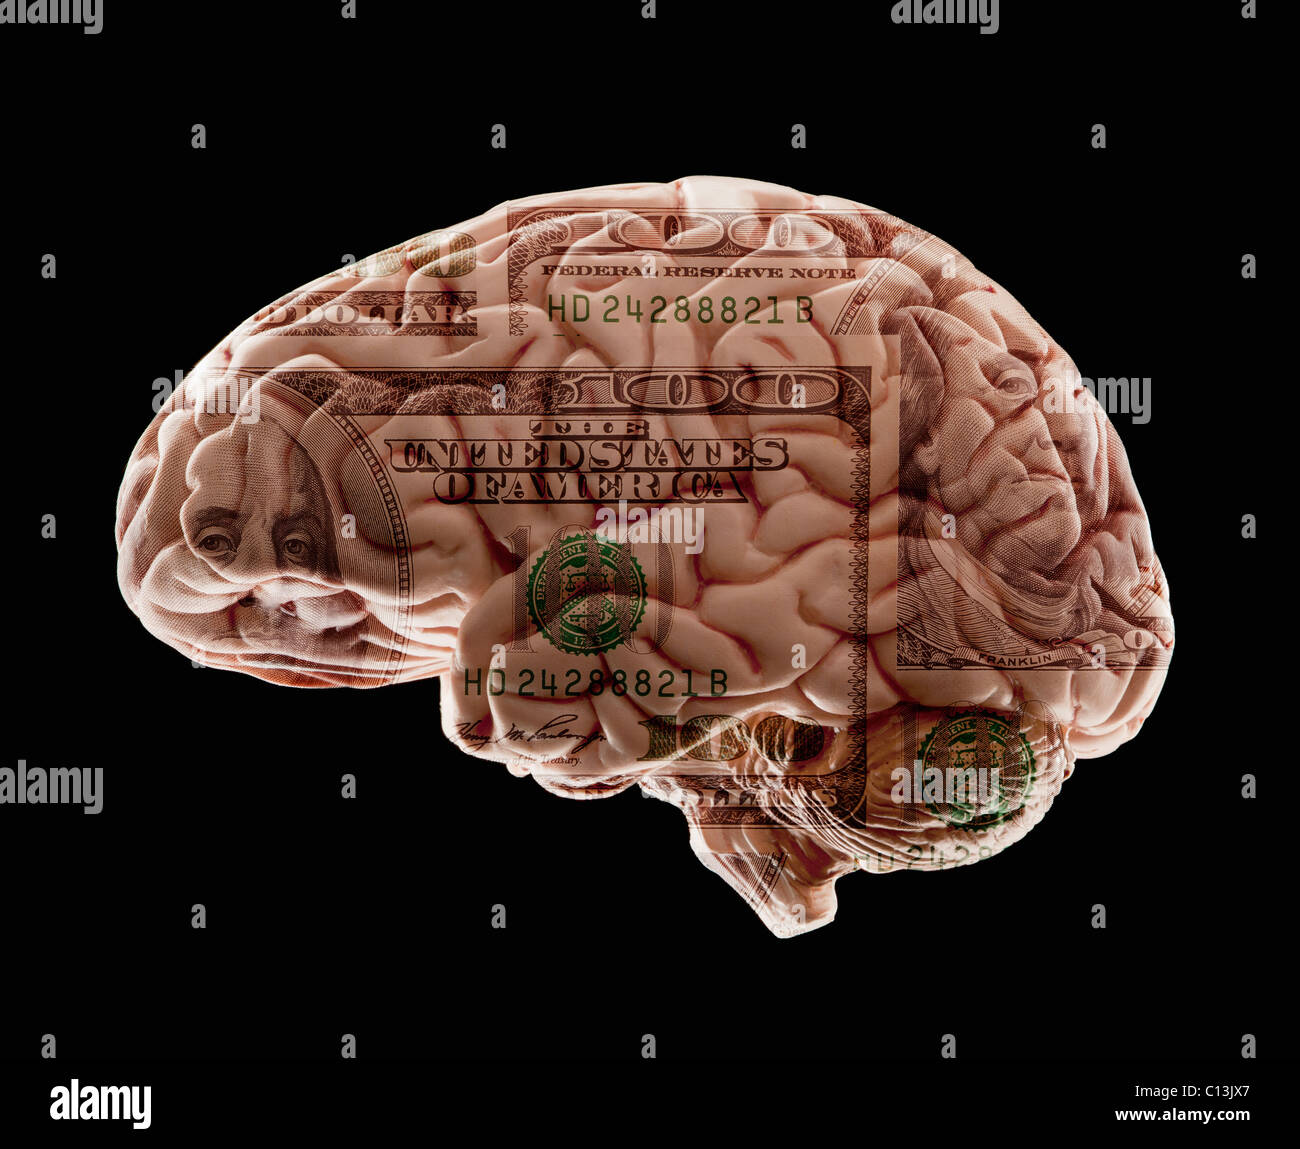 Composition of human brain model and one hundred dollar note - Stock Image